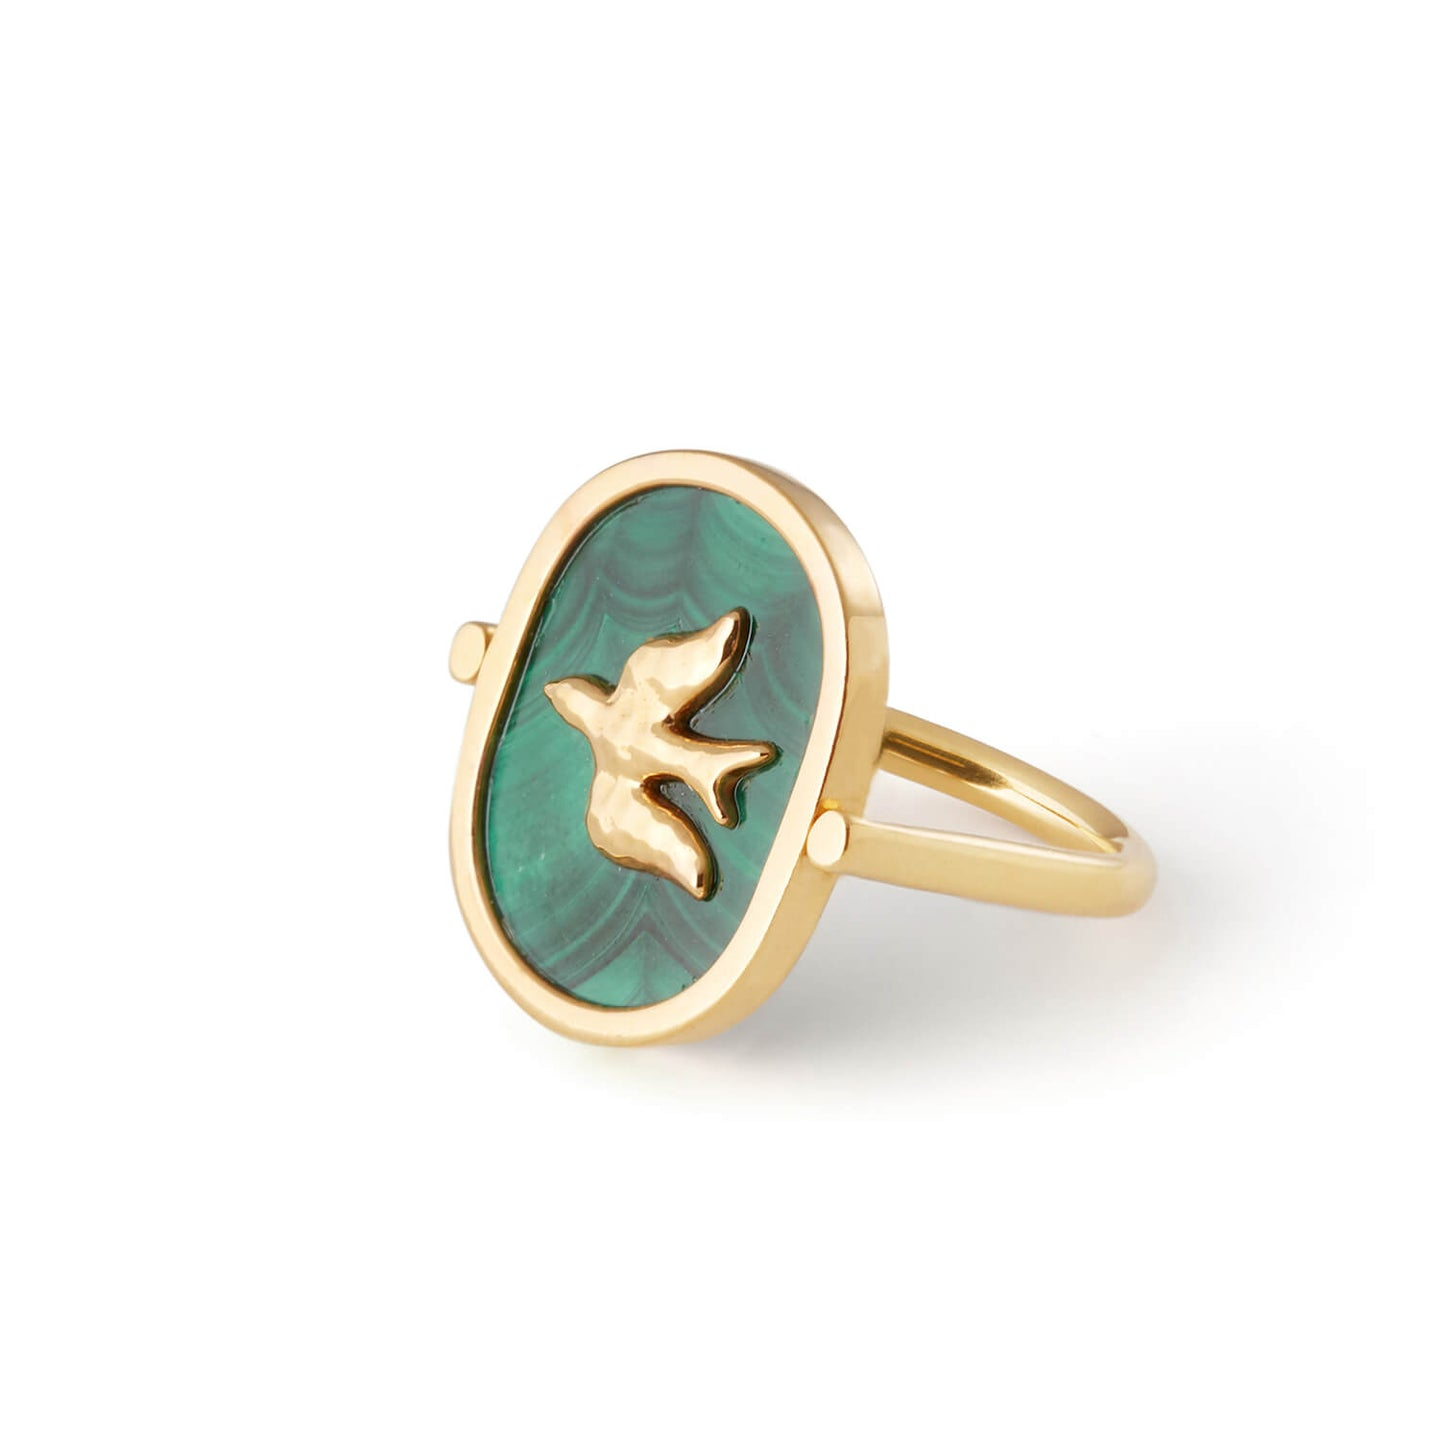 Green Malachite L'Oiseau Ring | 18kt Gold Vermeil | Motley x Estelle Dévé | Product Shot 1